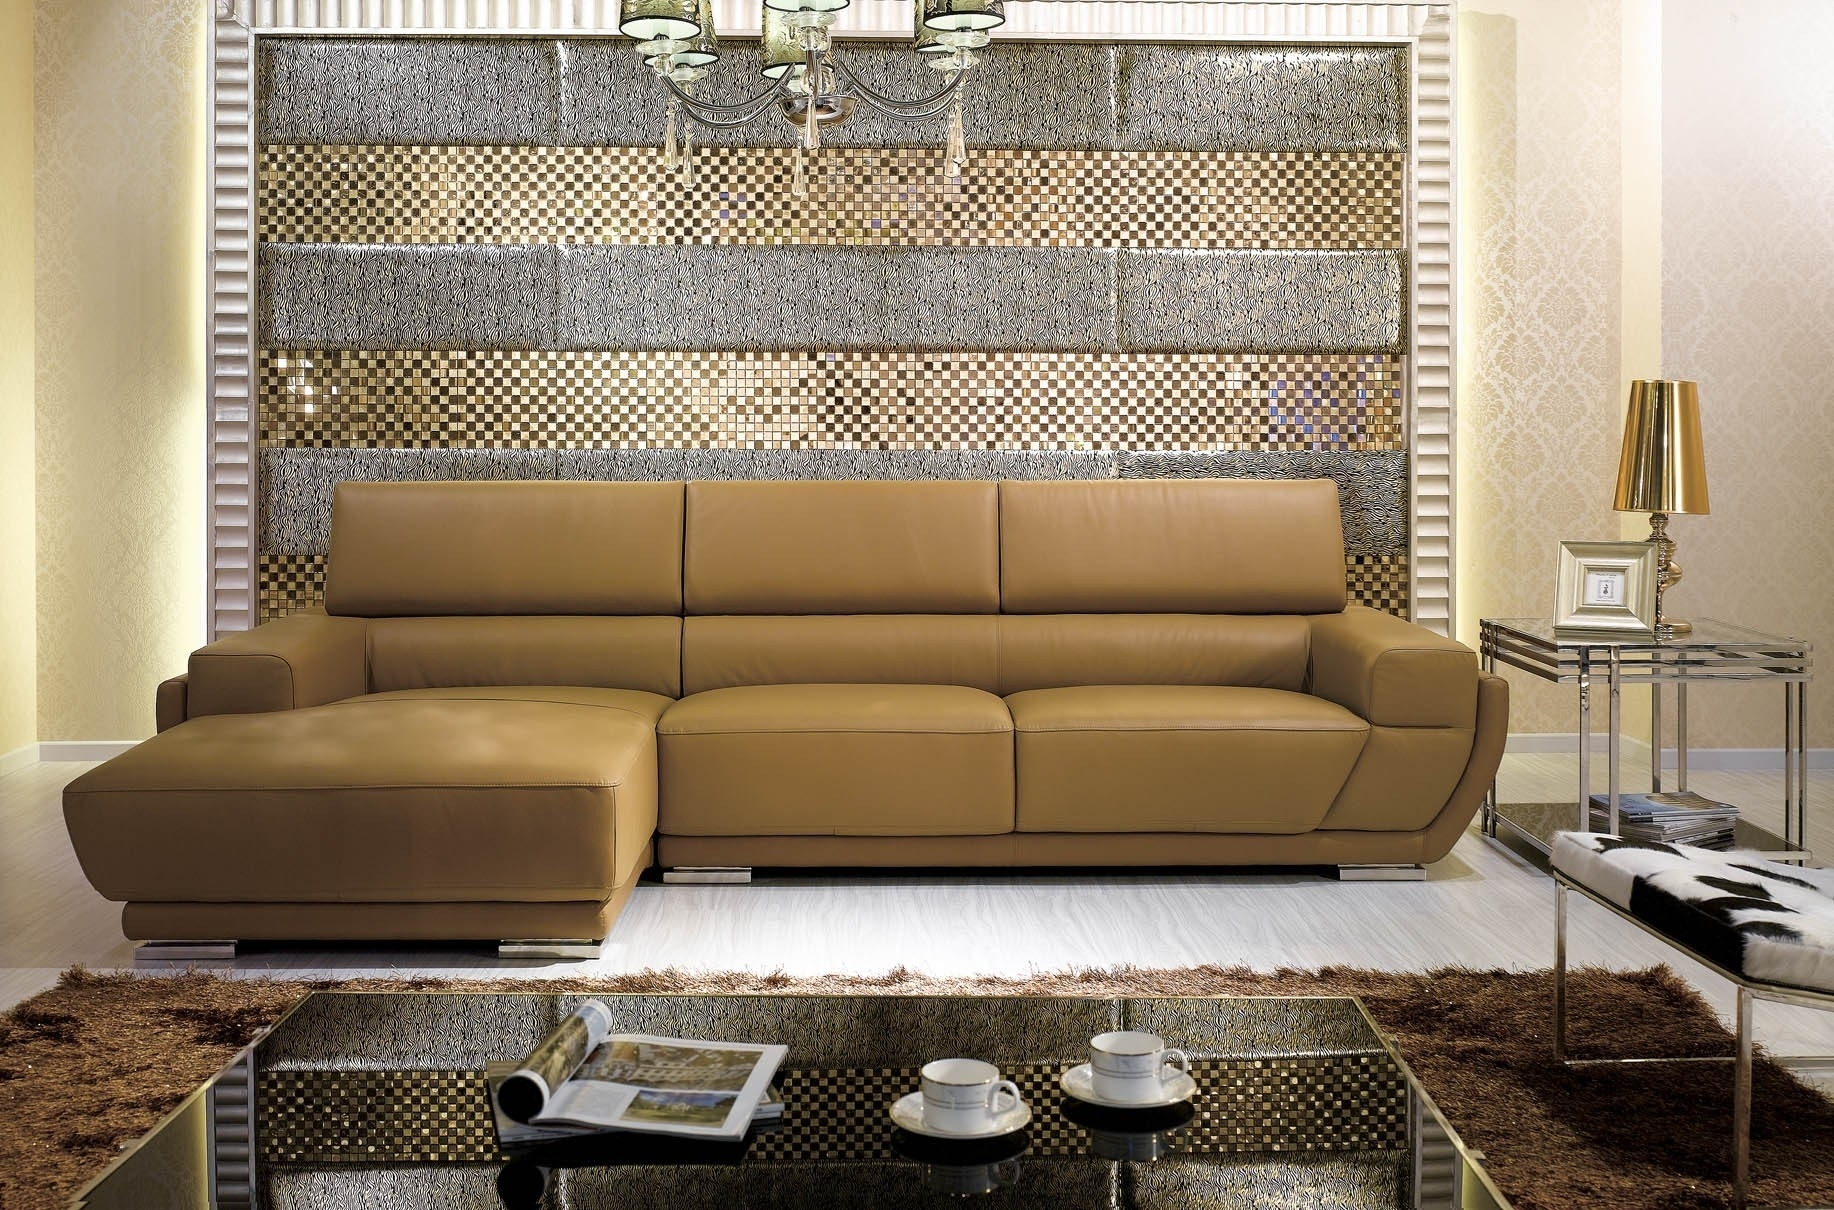 Astounding Camel Colored Sectional Sofa 94 For Sectional Sofa Pertaining To Camel Colored Sectional Sofas (Image 2 of 10)